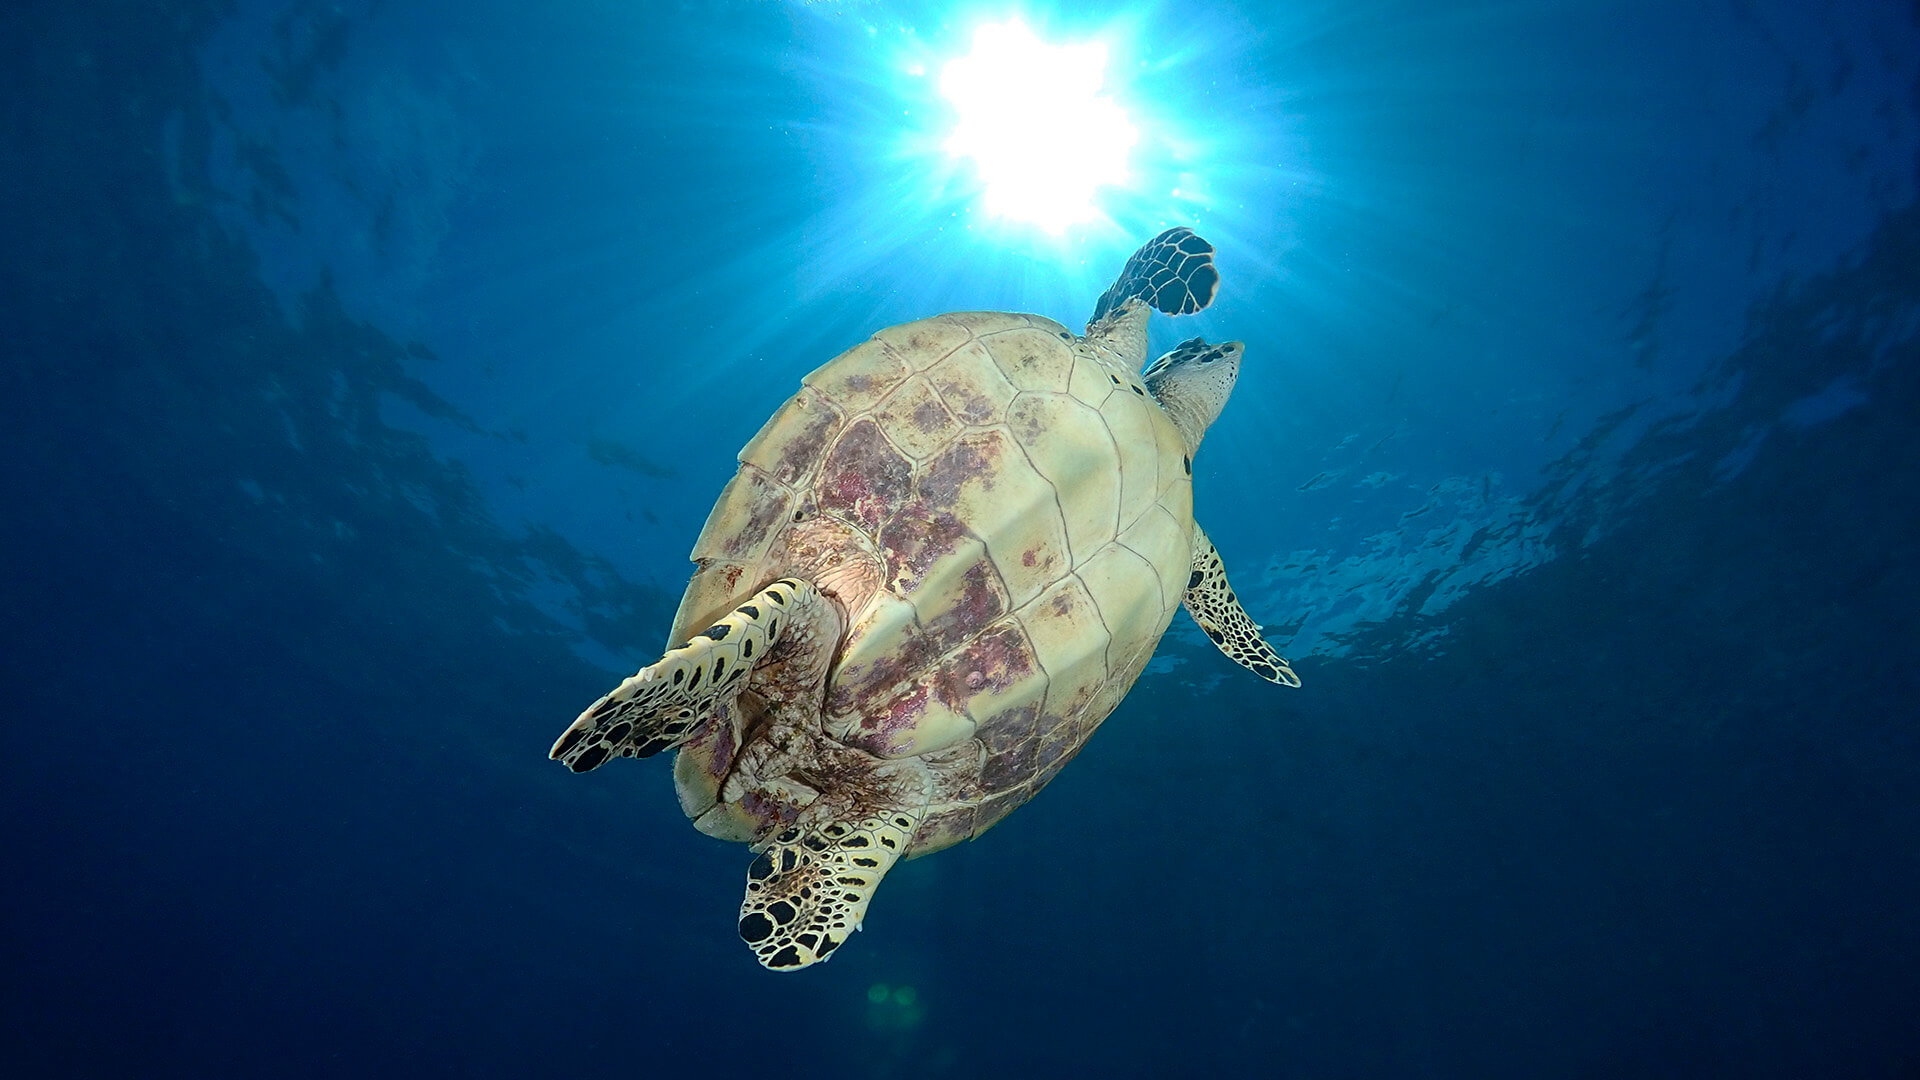 similan and surin new rules help reduce single use plastics and save turtles